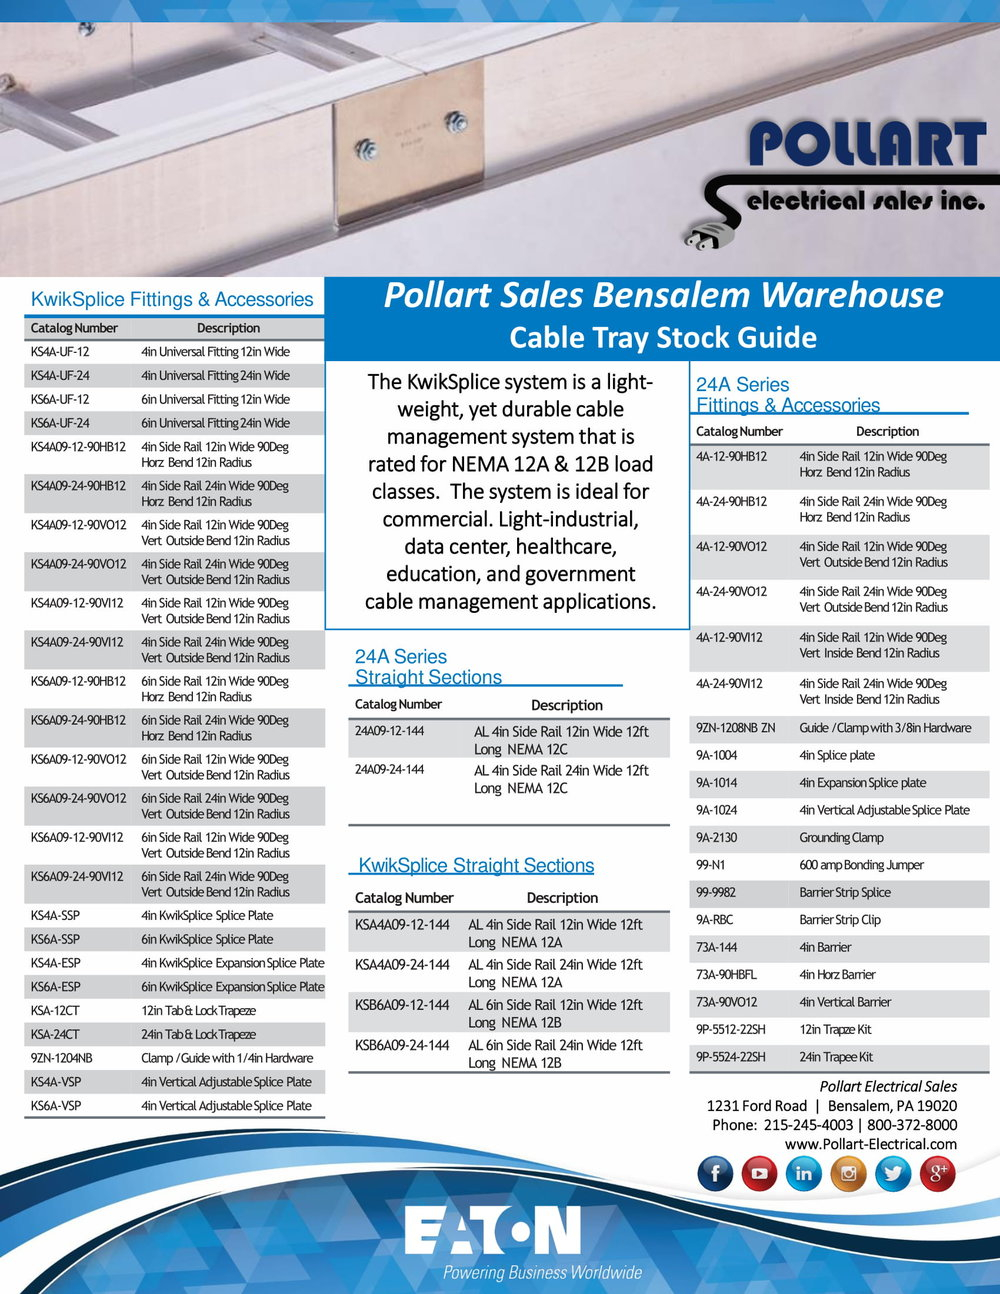 Click here to view and save a copy of the B-Line Cable Tray Stocked in our Bensalem Warehouse! -